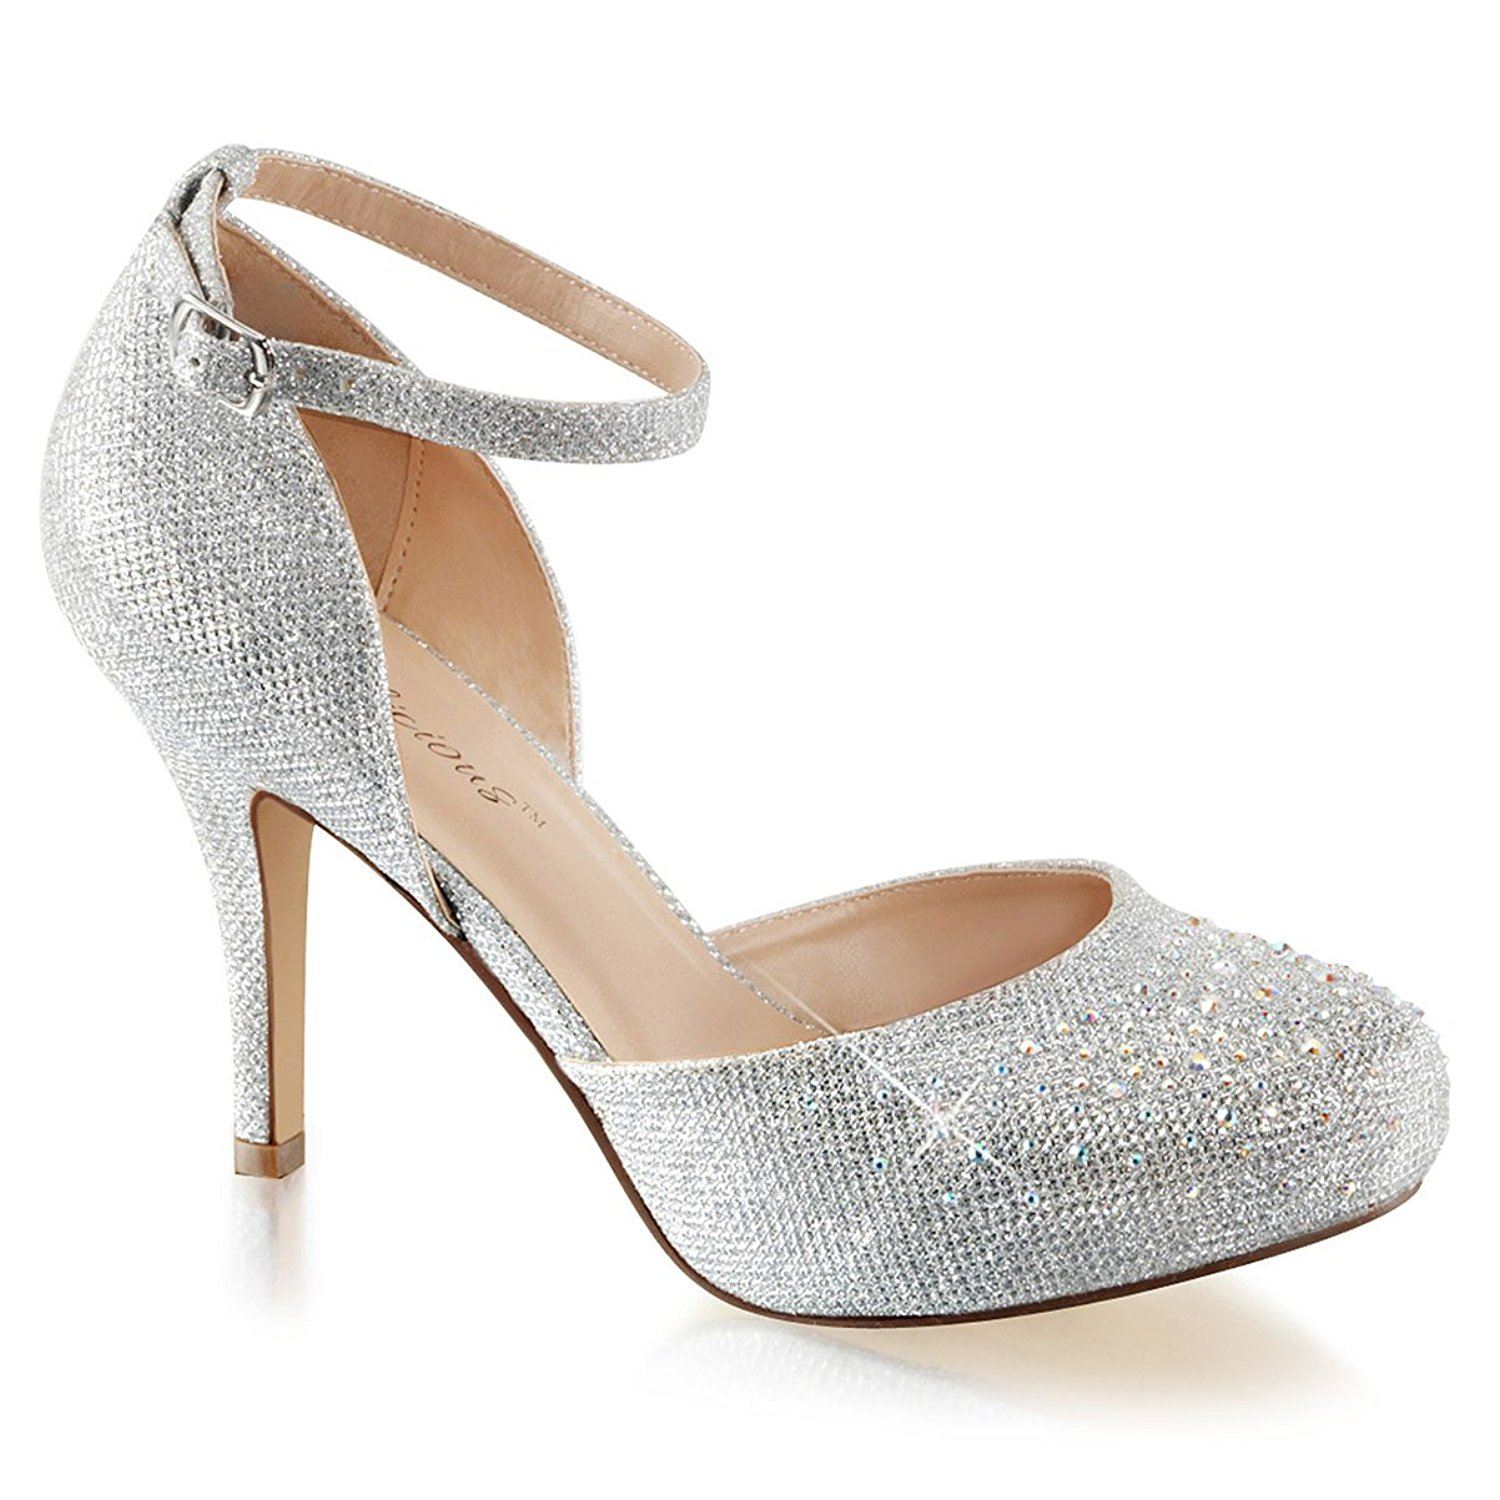 Silver Glitter Heels With Ankle Strap CLL5teyo